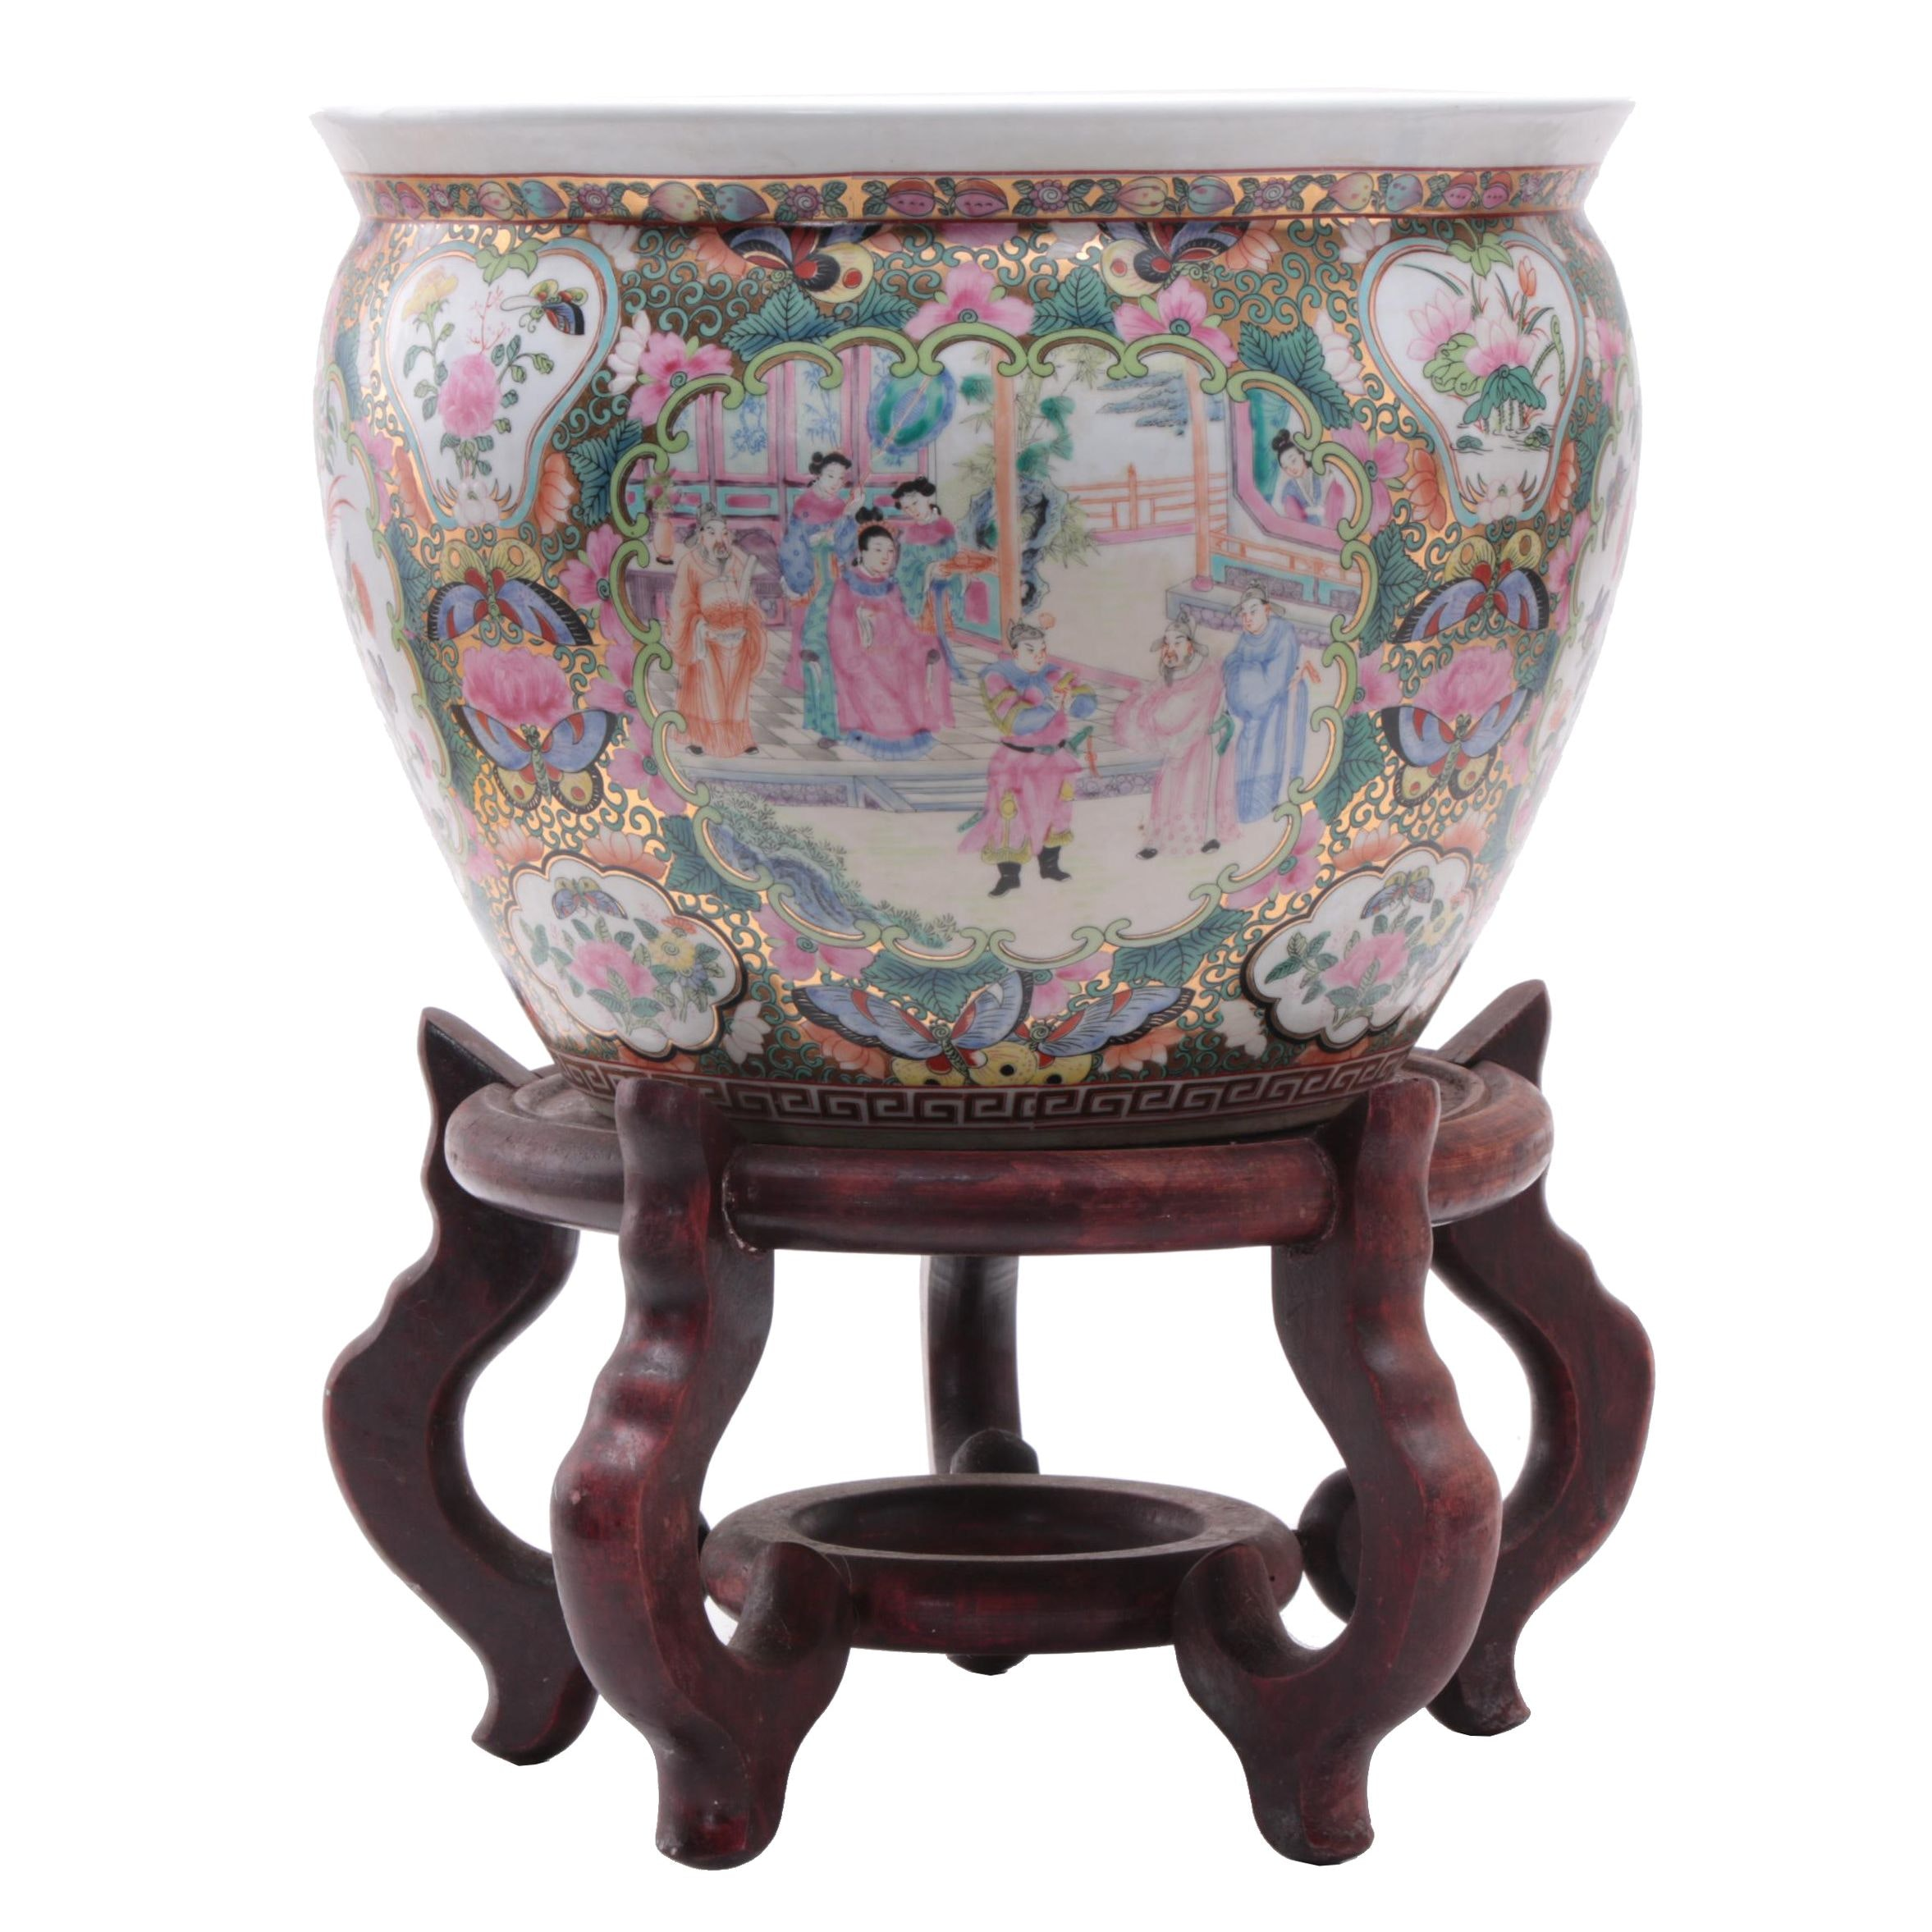 Chinese Rose Medallion Ceramic Jardiniere with Carved Wooden Stand